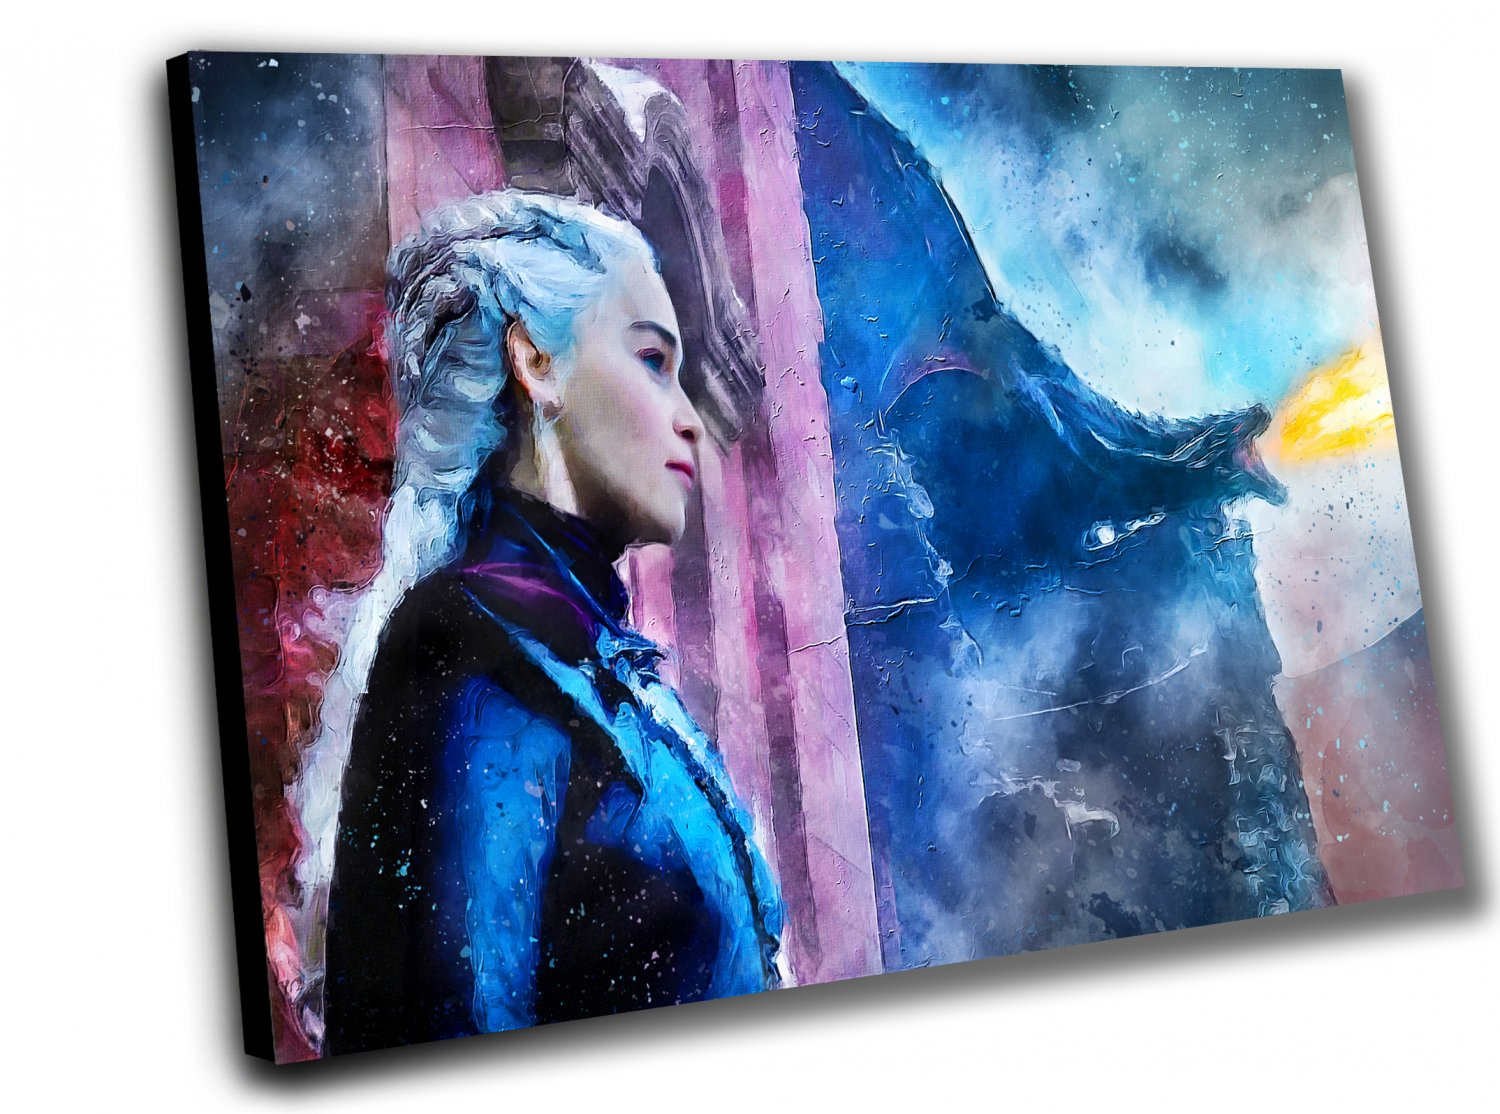 Game of Thrones, Daenerys Targaryen, Emilia Clarke  14x20 inches Stretched Canvas